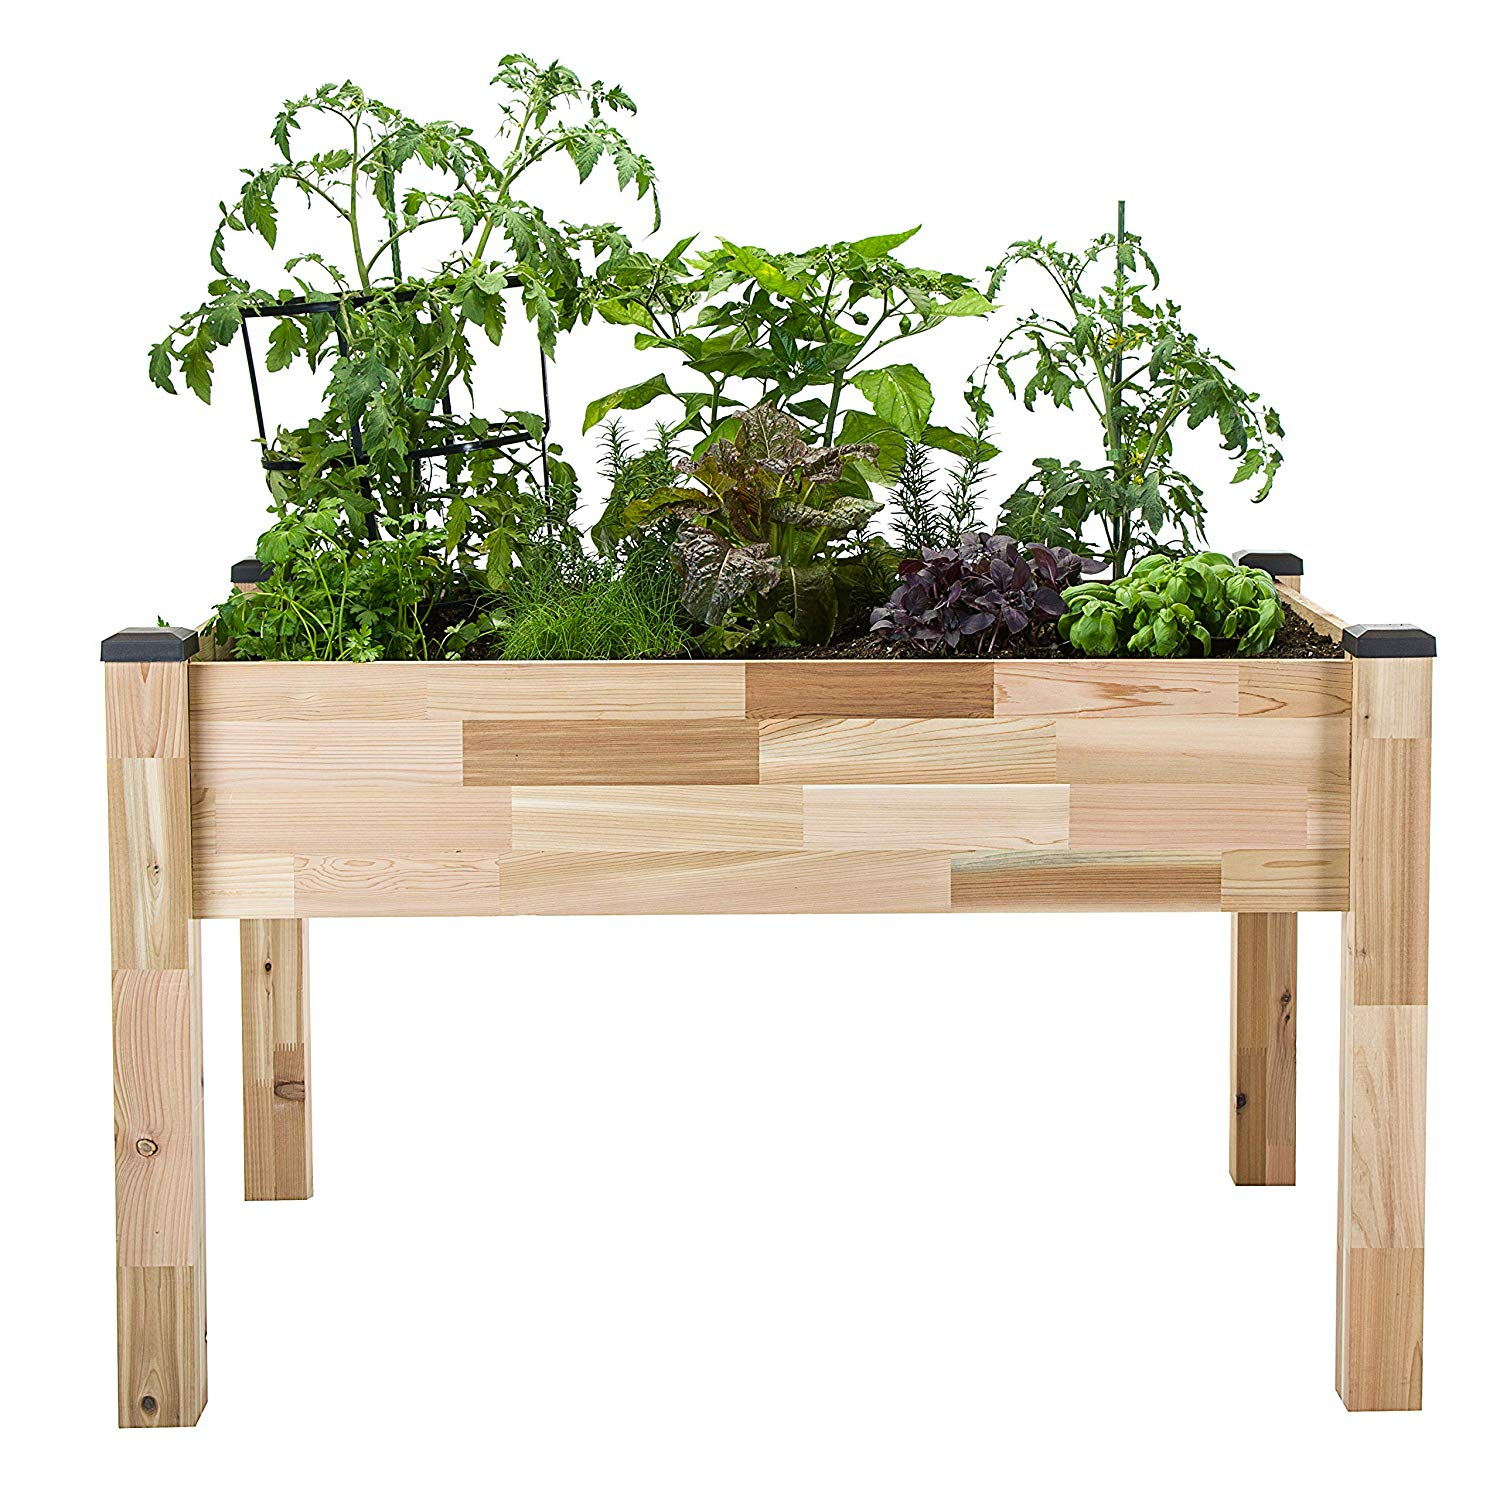 """CedarCraft Self-Watering Elevated Cedar Planter (23"""" X 49"""" X 30"""") - Grow Fresh Vegetables, Herb Gardens, Flowers & Succulents. Raised Garden Bed for a Deck, Patio or Yard Gardening. No Tools Required."""